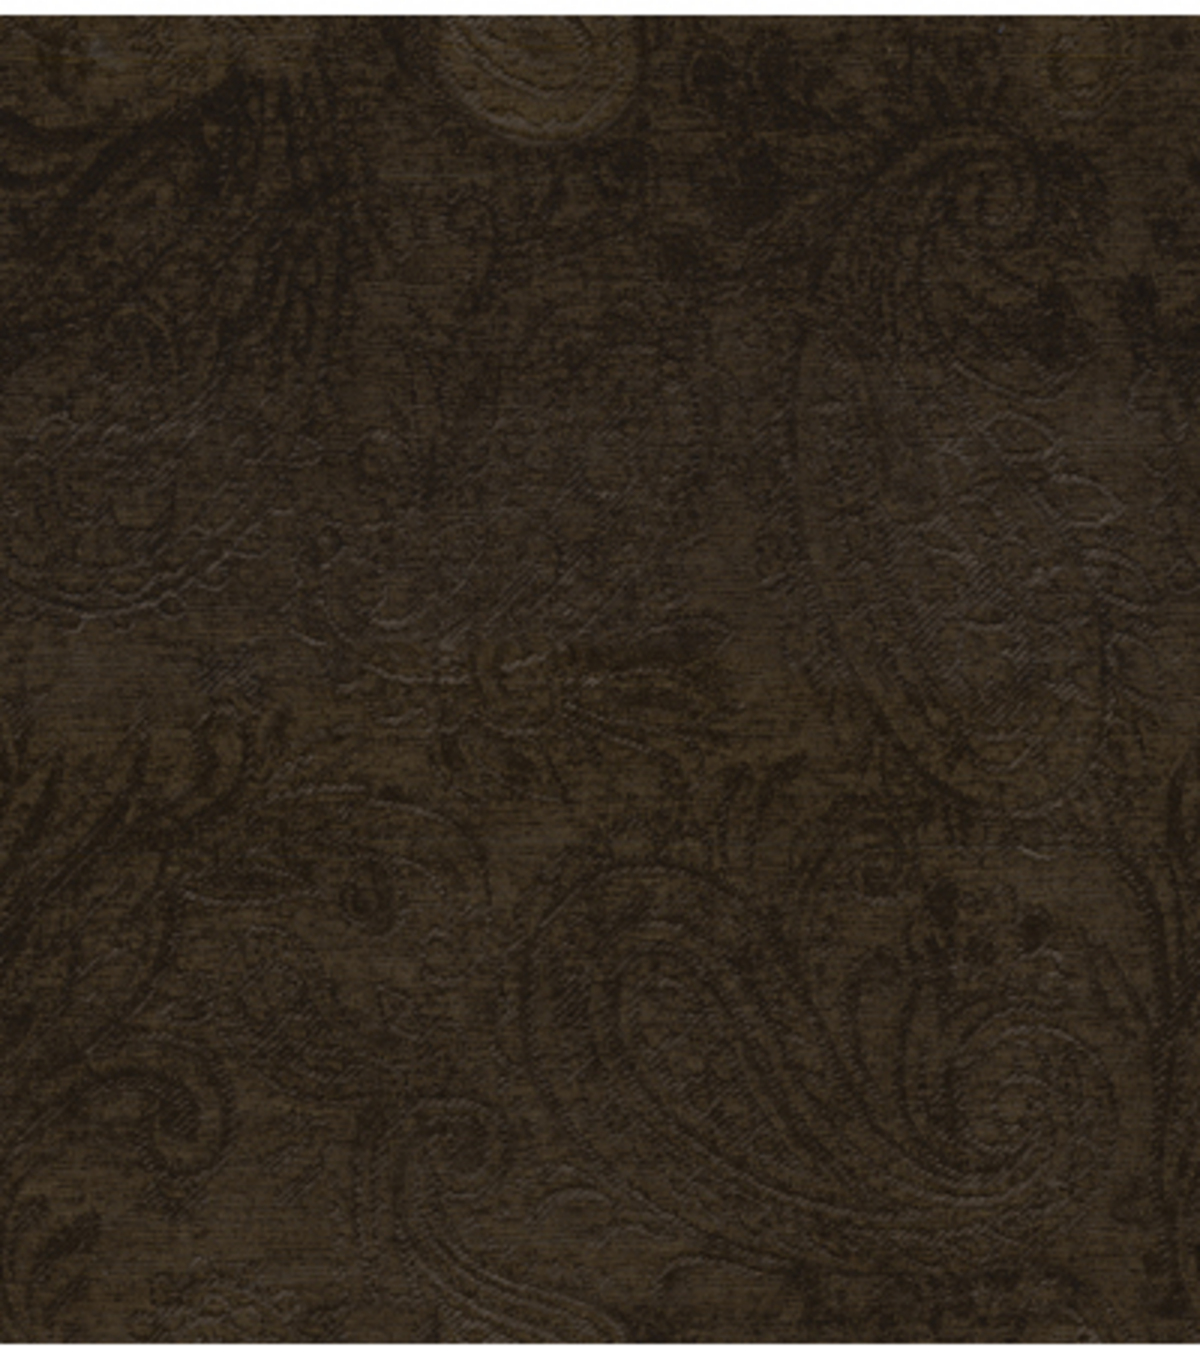 Home Decor 8\u0022x8\u0022 Fabric Swatch-Covington Kelso